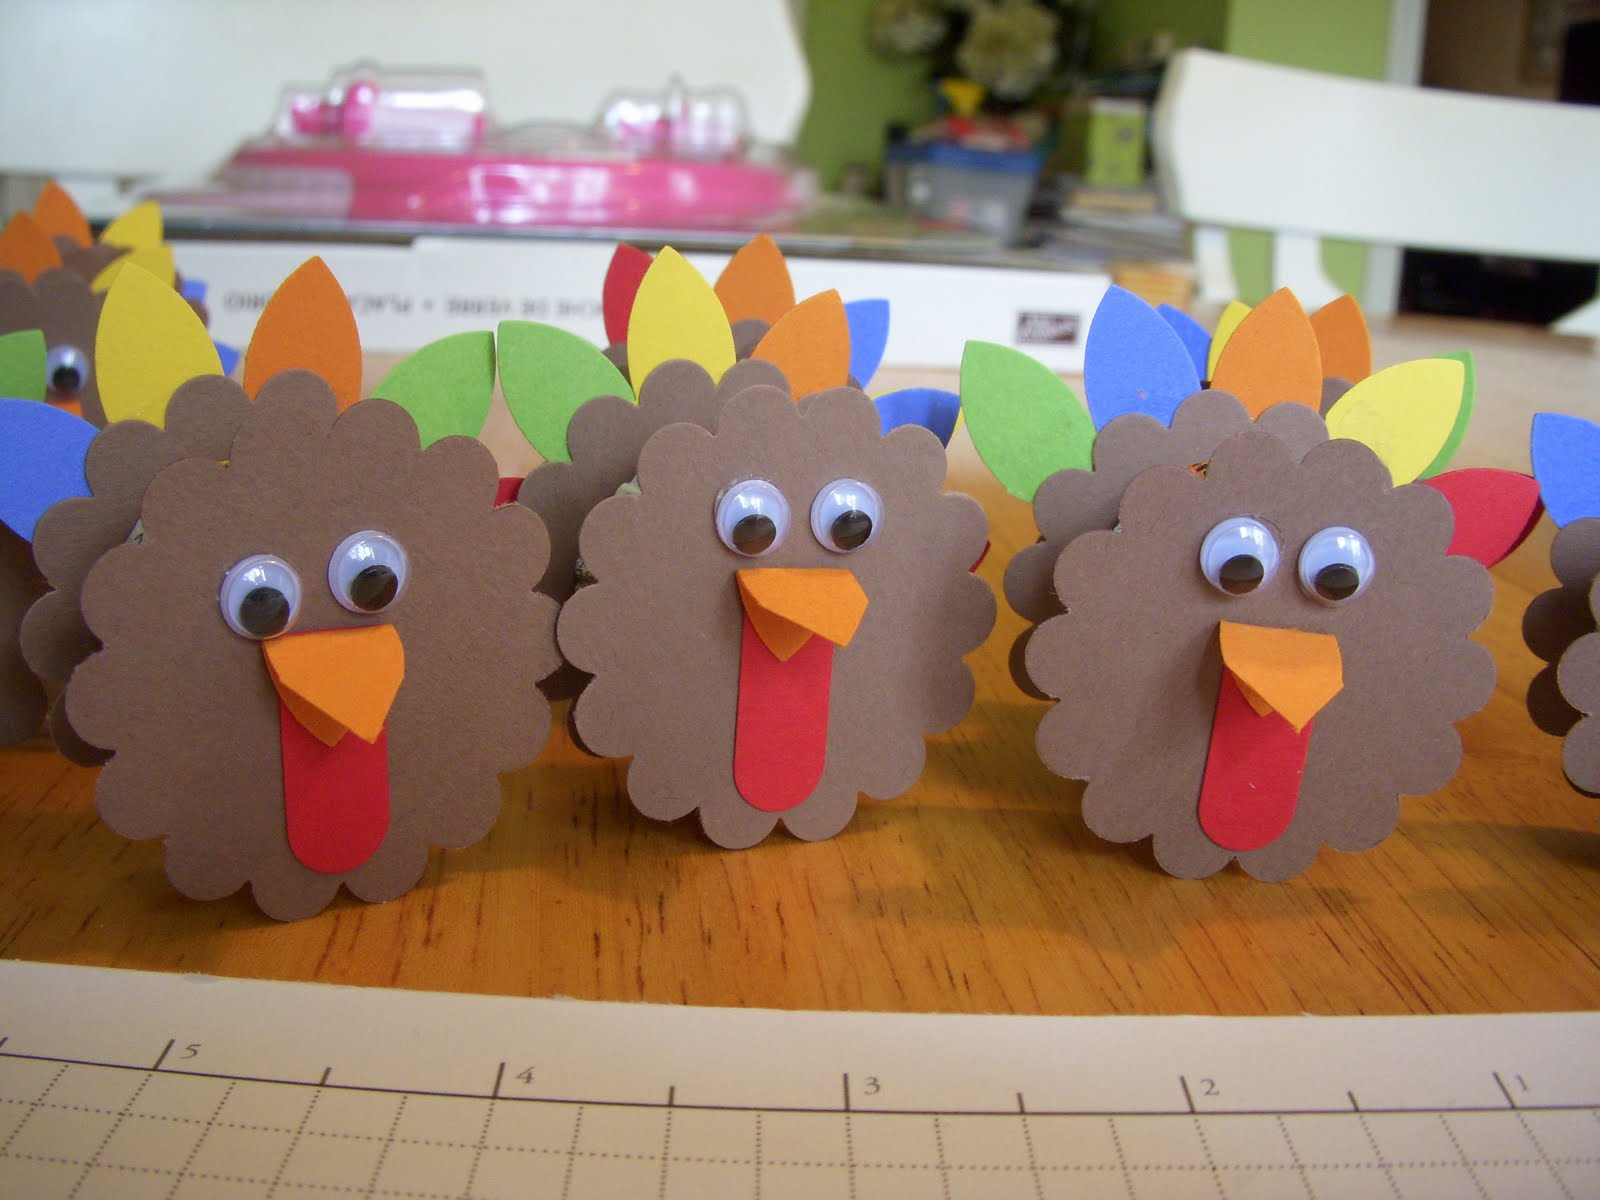 Joy in the everyday november 2009 for Thanksgiving craft ideas for kindergarten